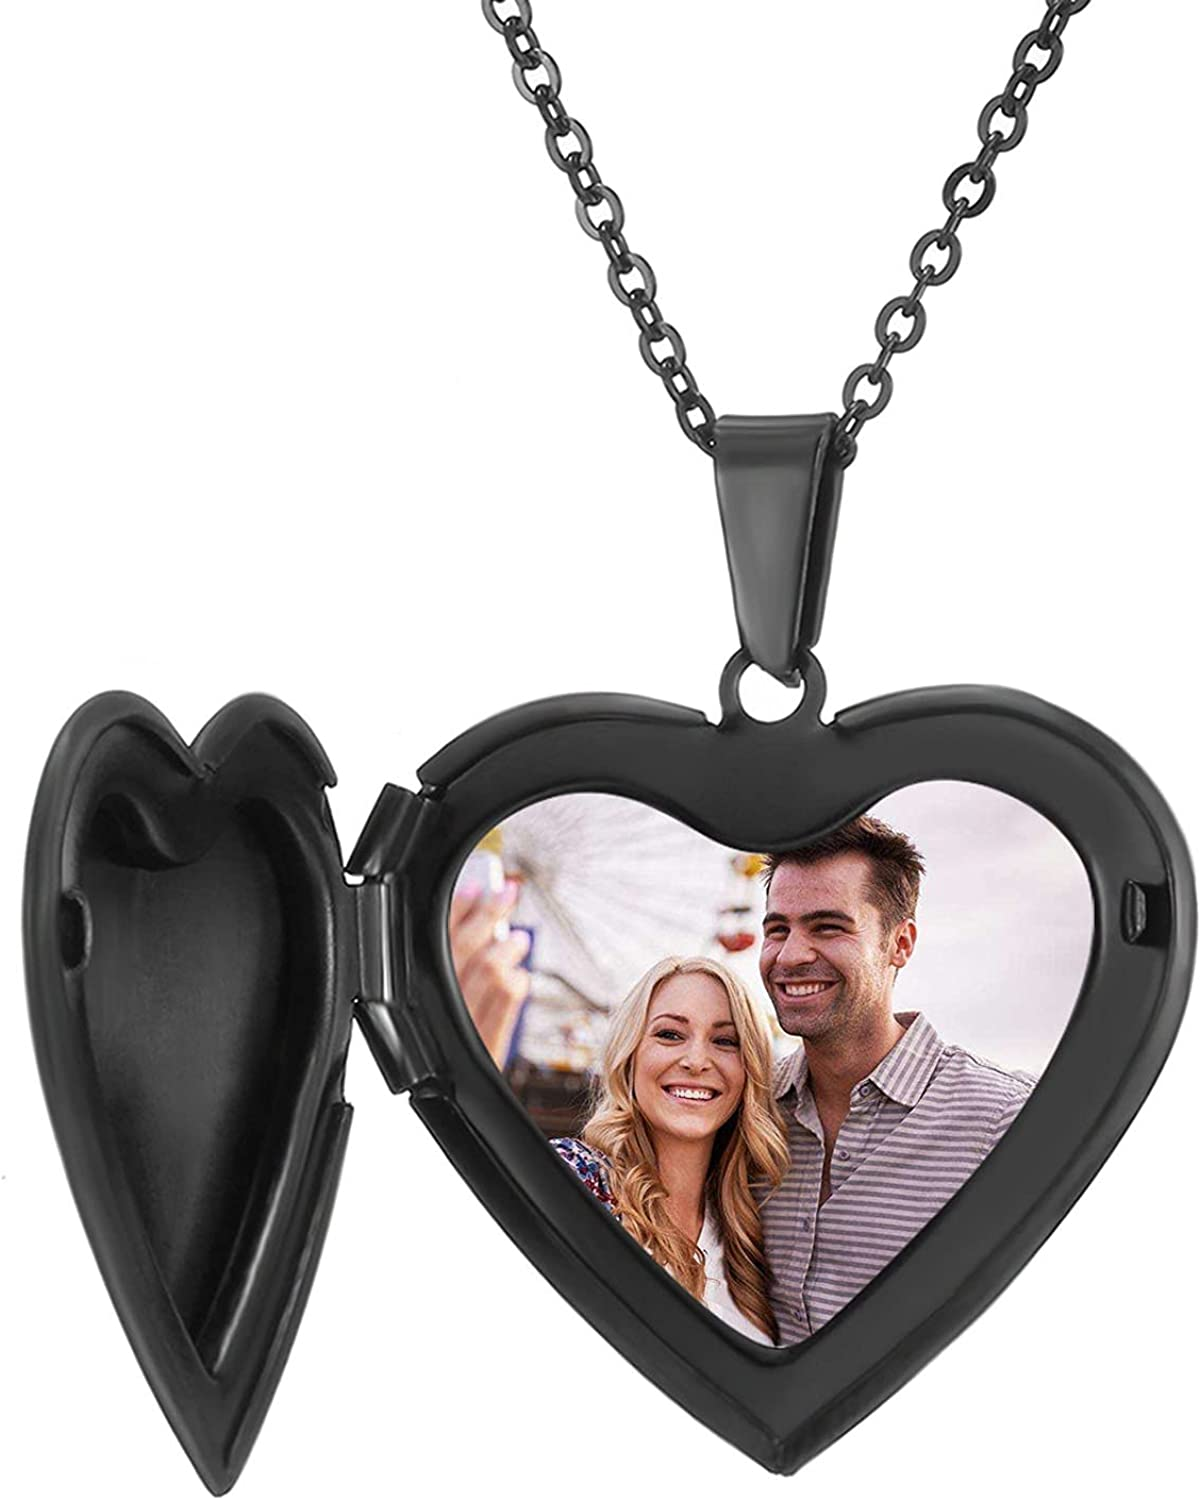 RWQIAN Personalized Heart Locket Necklace Custom Photo Locket Necklace for Women Picture Locket Pendant Necklace Engraved Any Text & Symbols Customized Lockets for Girl